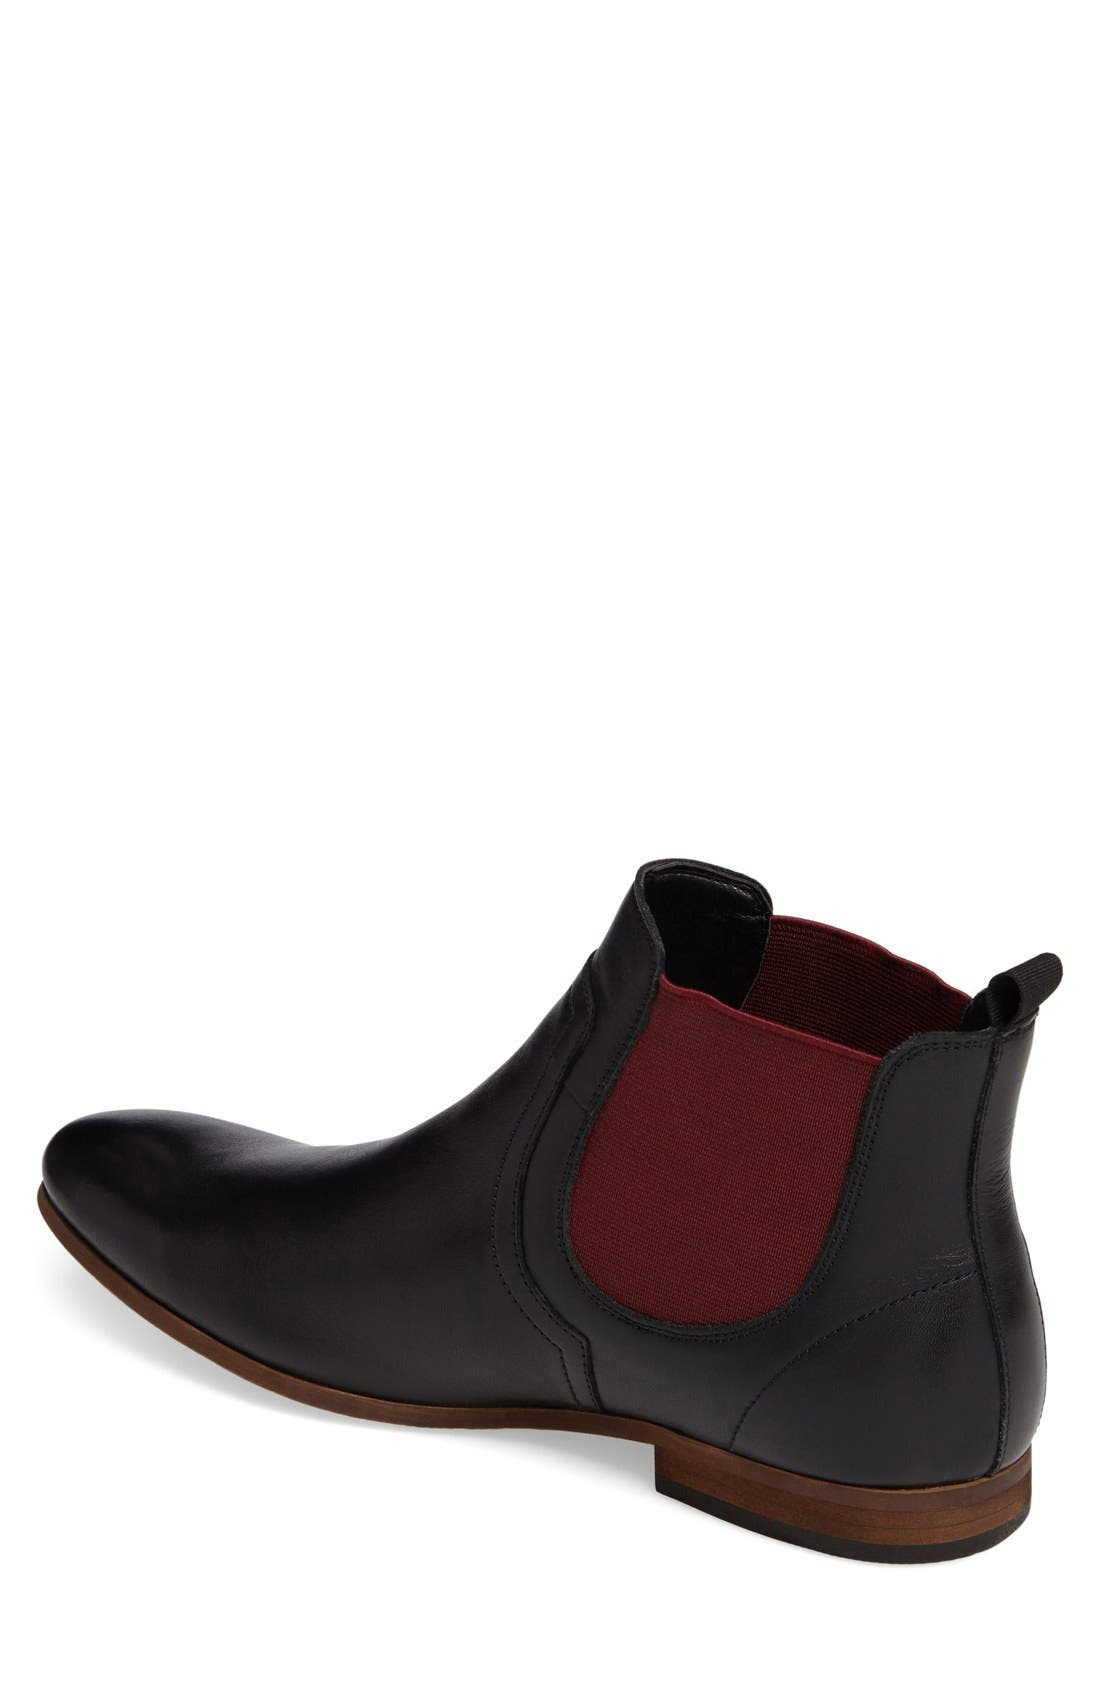 Brysen Chelsea Boot,                             Alternate thumbnail 12, color,